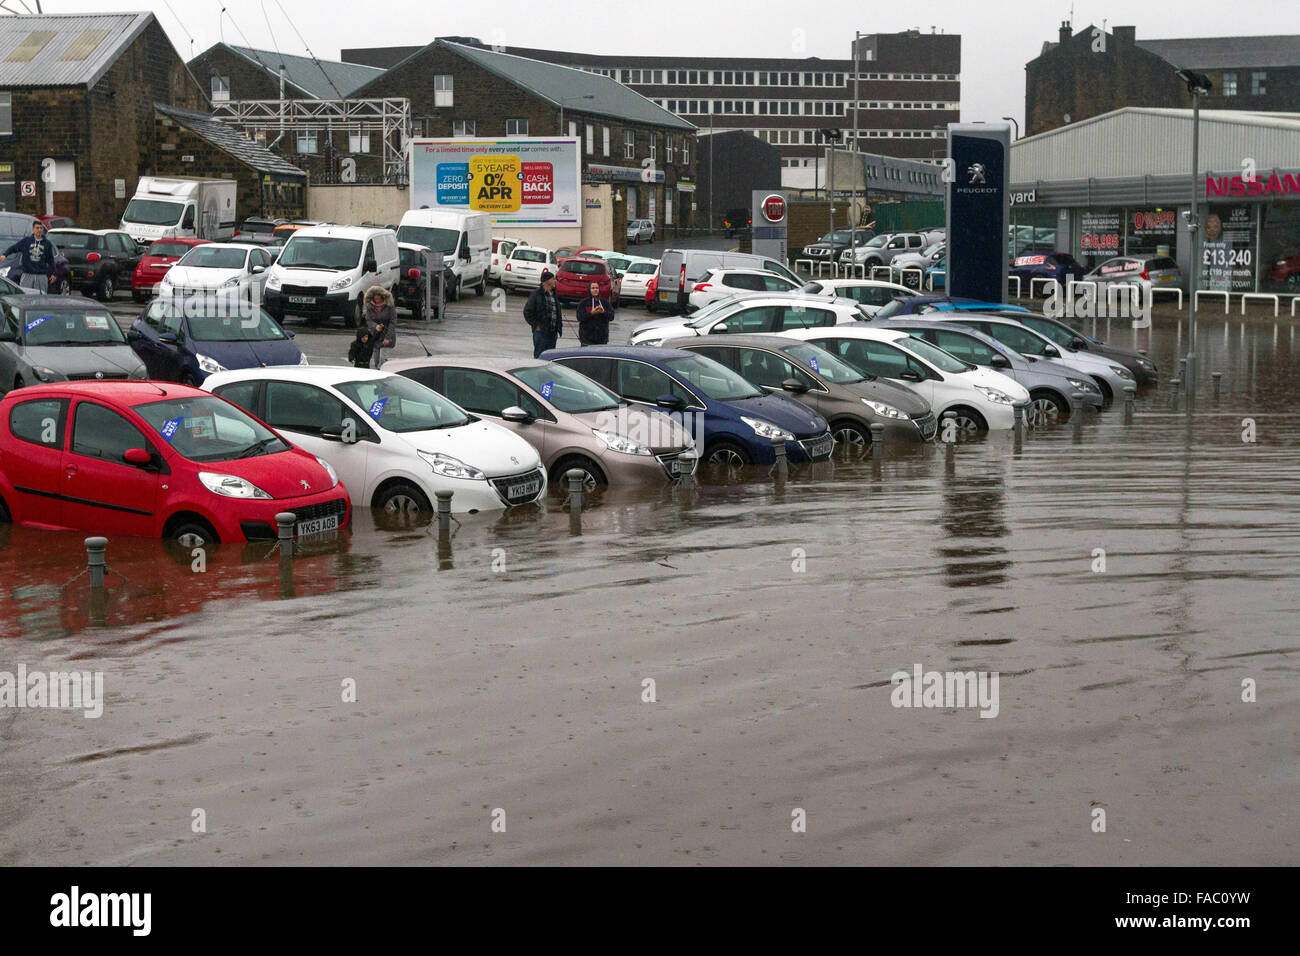 Keighley, UK. 26 December 2105. Cars at a dealership stand partly submerged during floods in Keighley, West Yorkshire Stock Photo